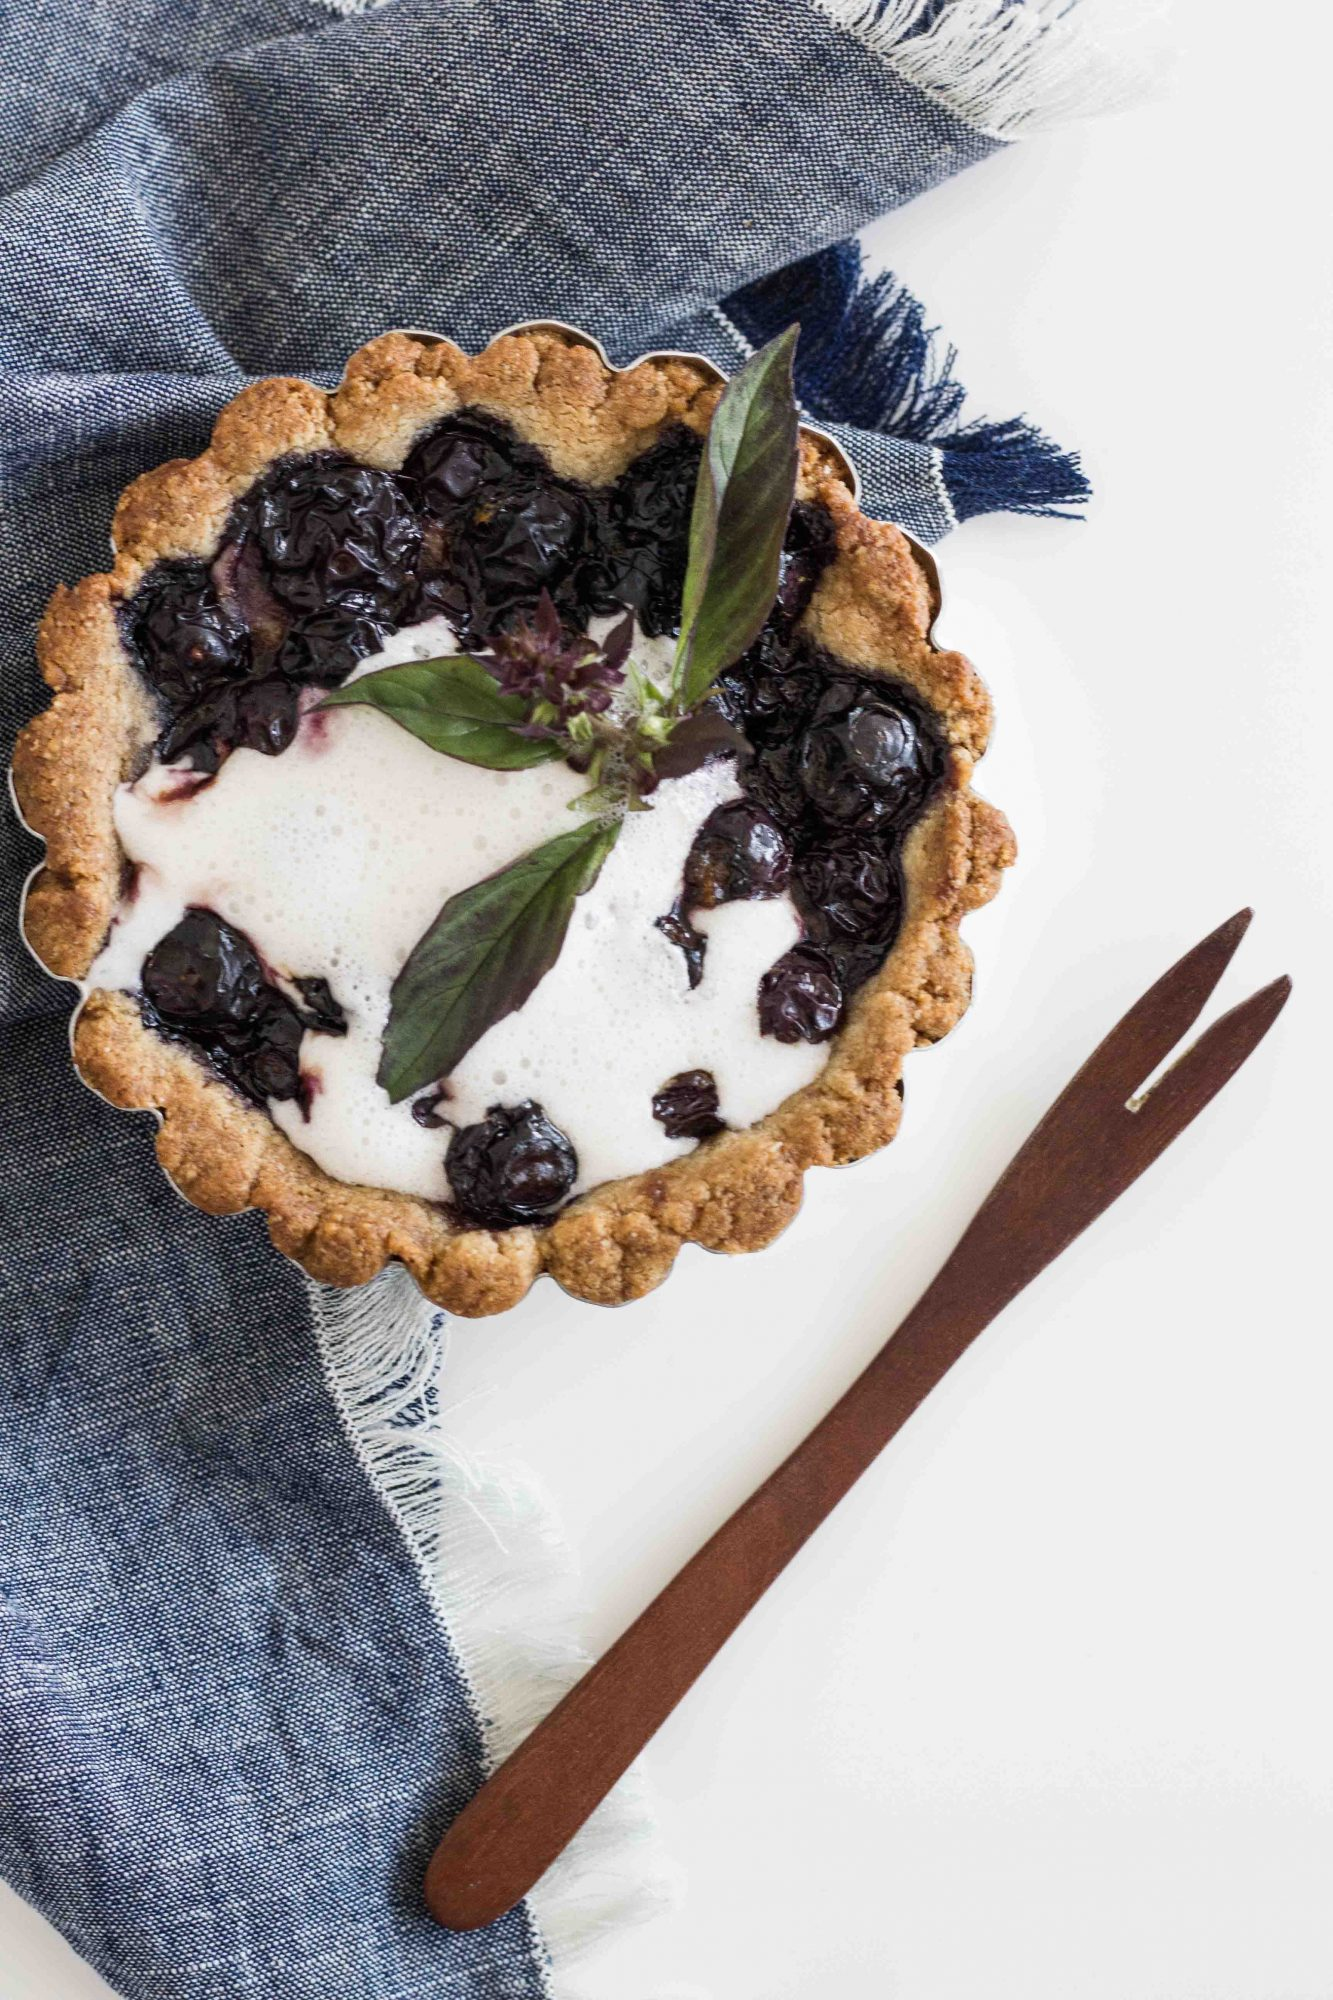 Paleo Vegan Blueberry Tart